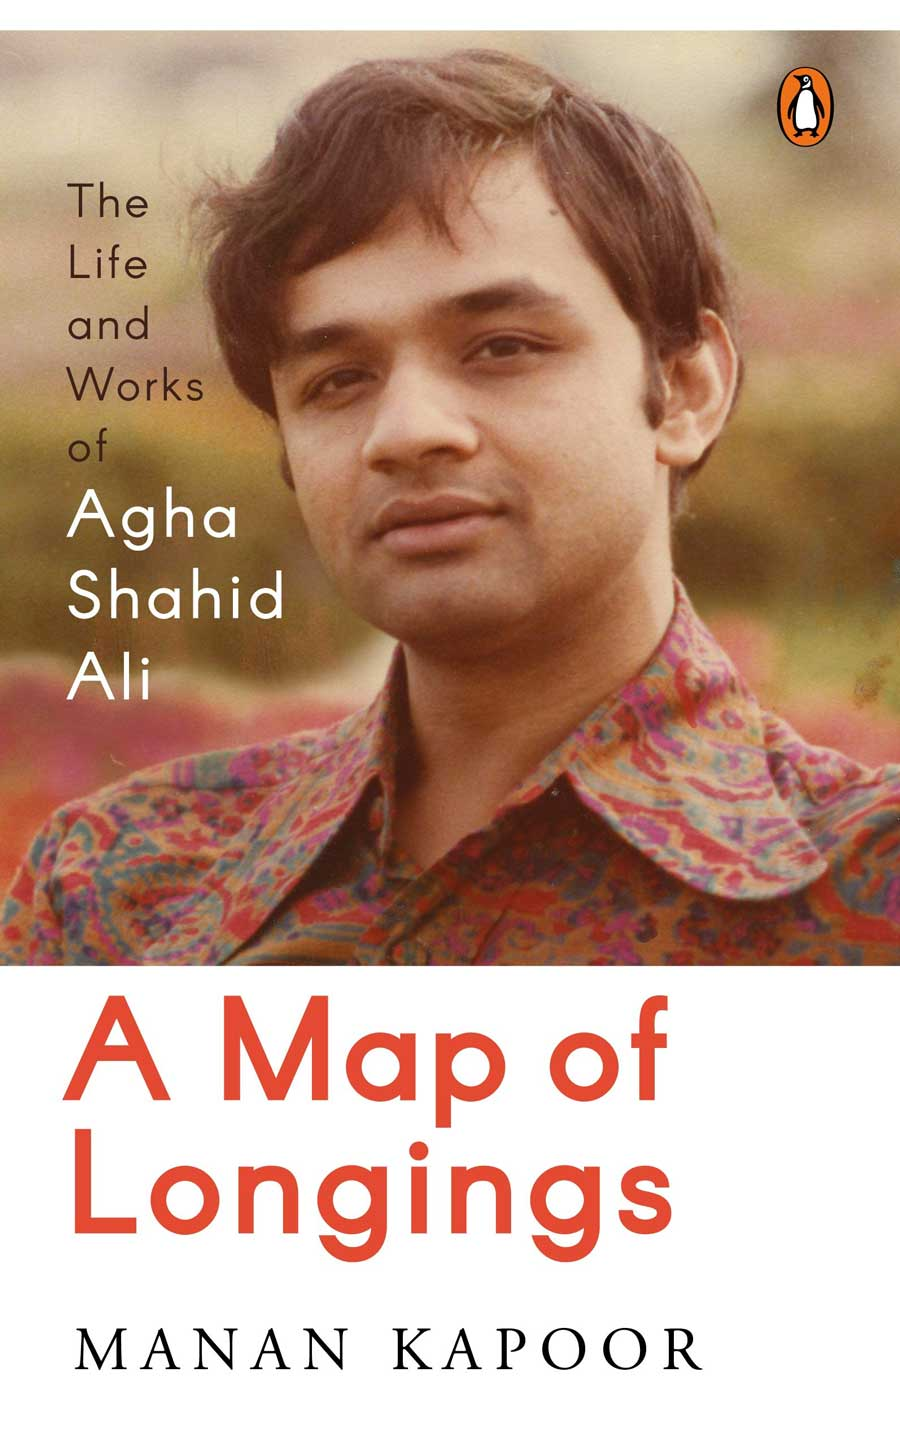 A Map of Longings: Life and Works of Agha Shahid Ali by Manan Kapoor, Viking, Rs 499